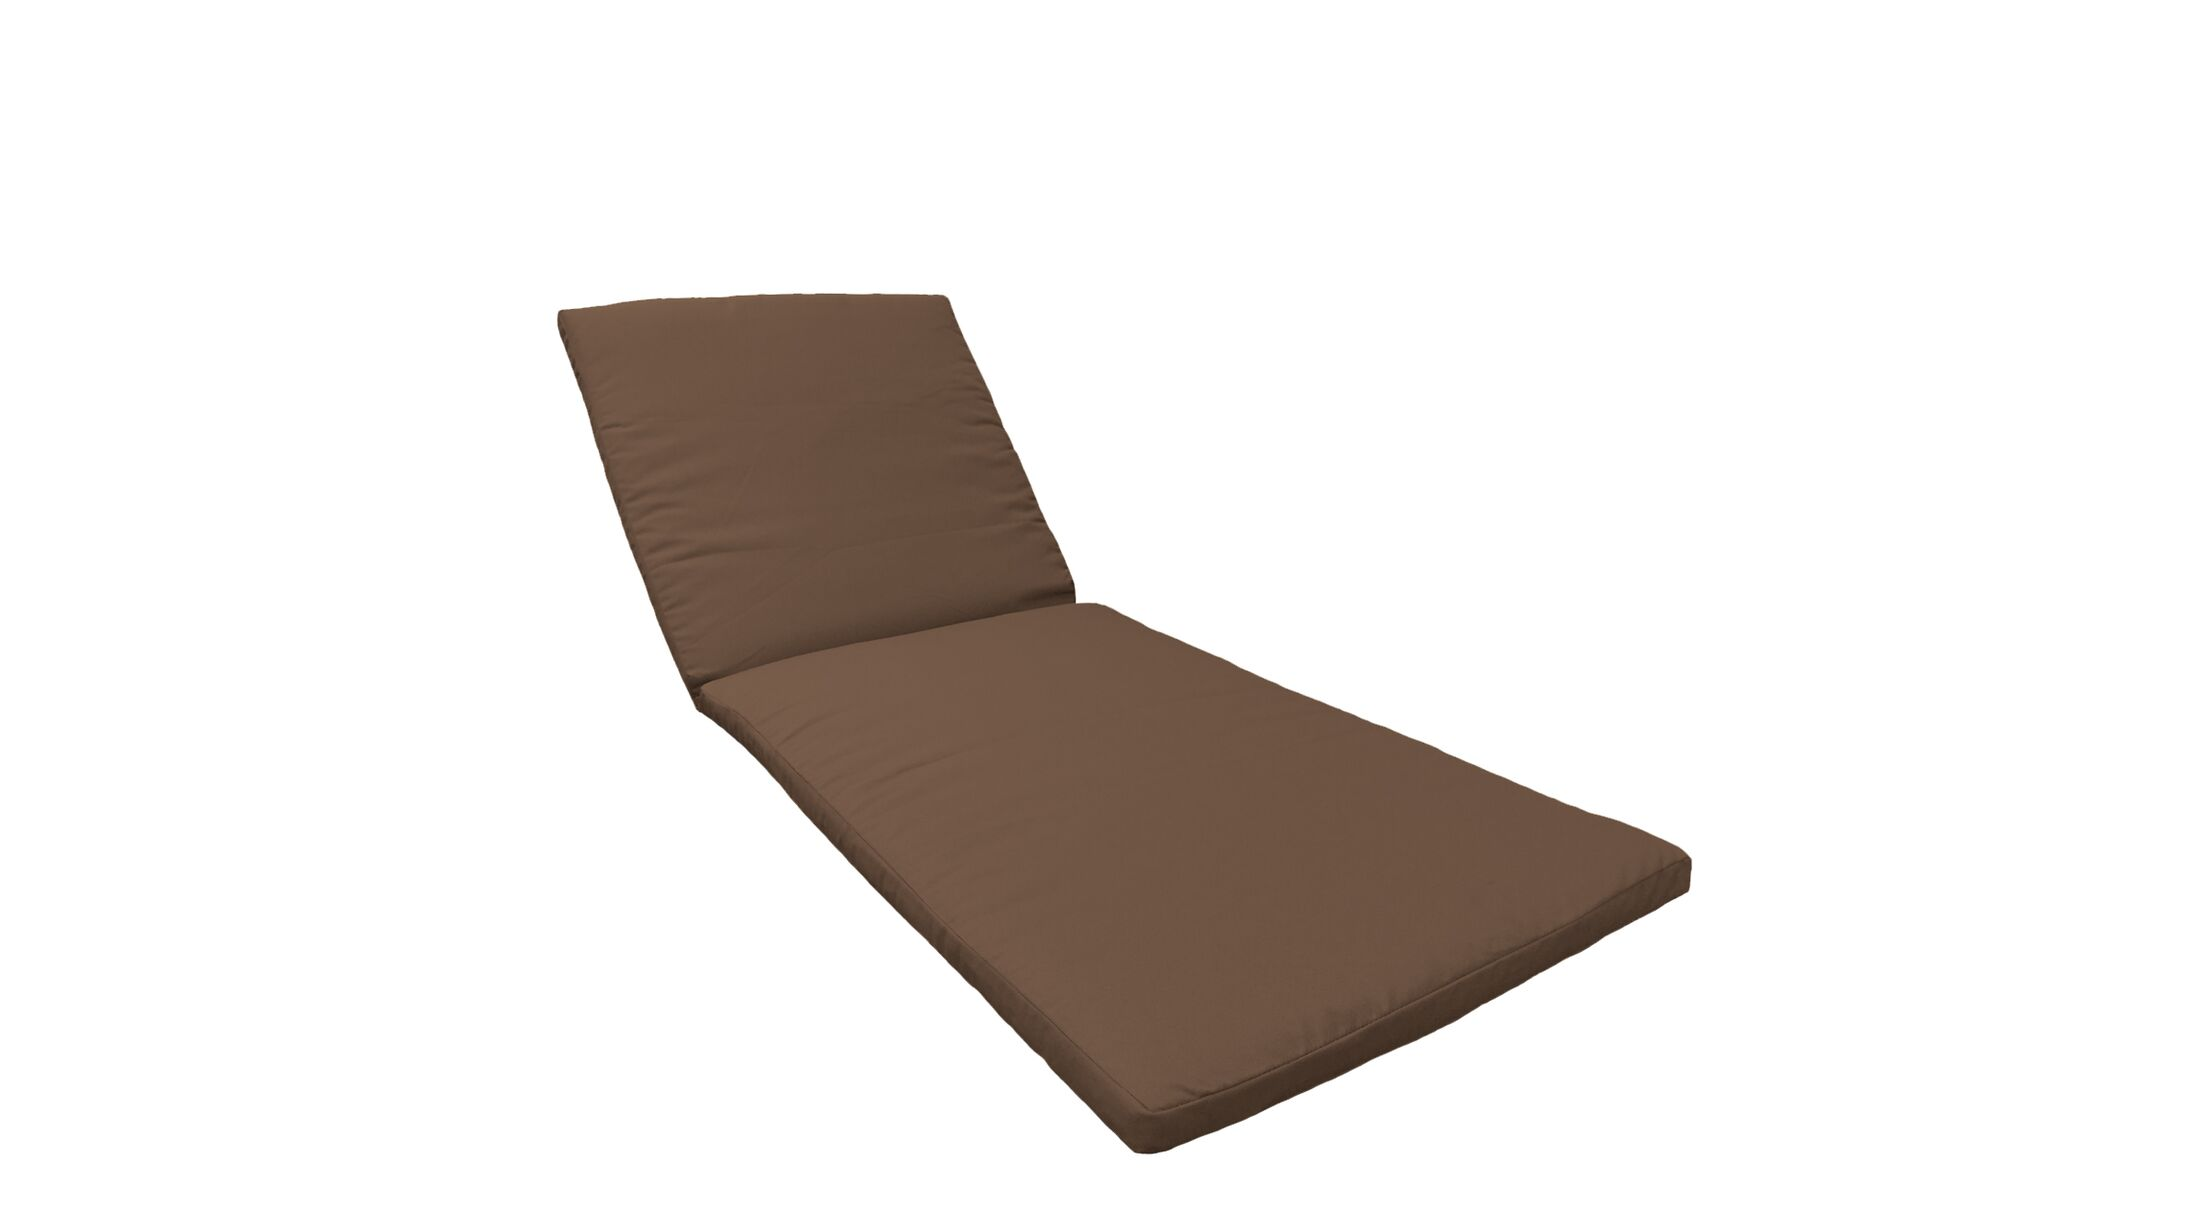 2 Piece Outdoor Chaise Lounge Cushion Set Fabric: Cocoa